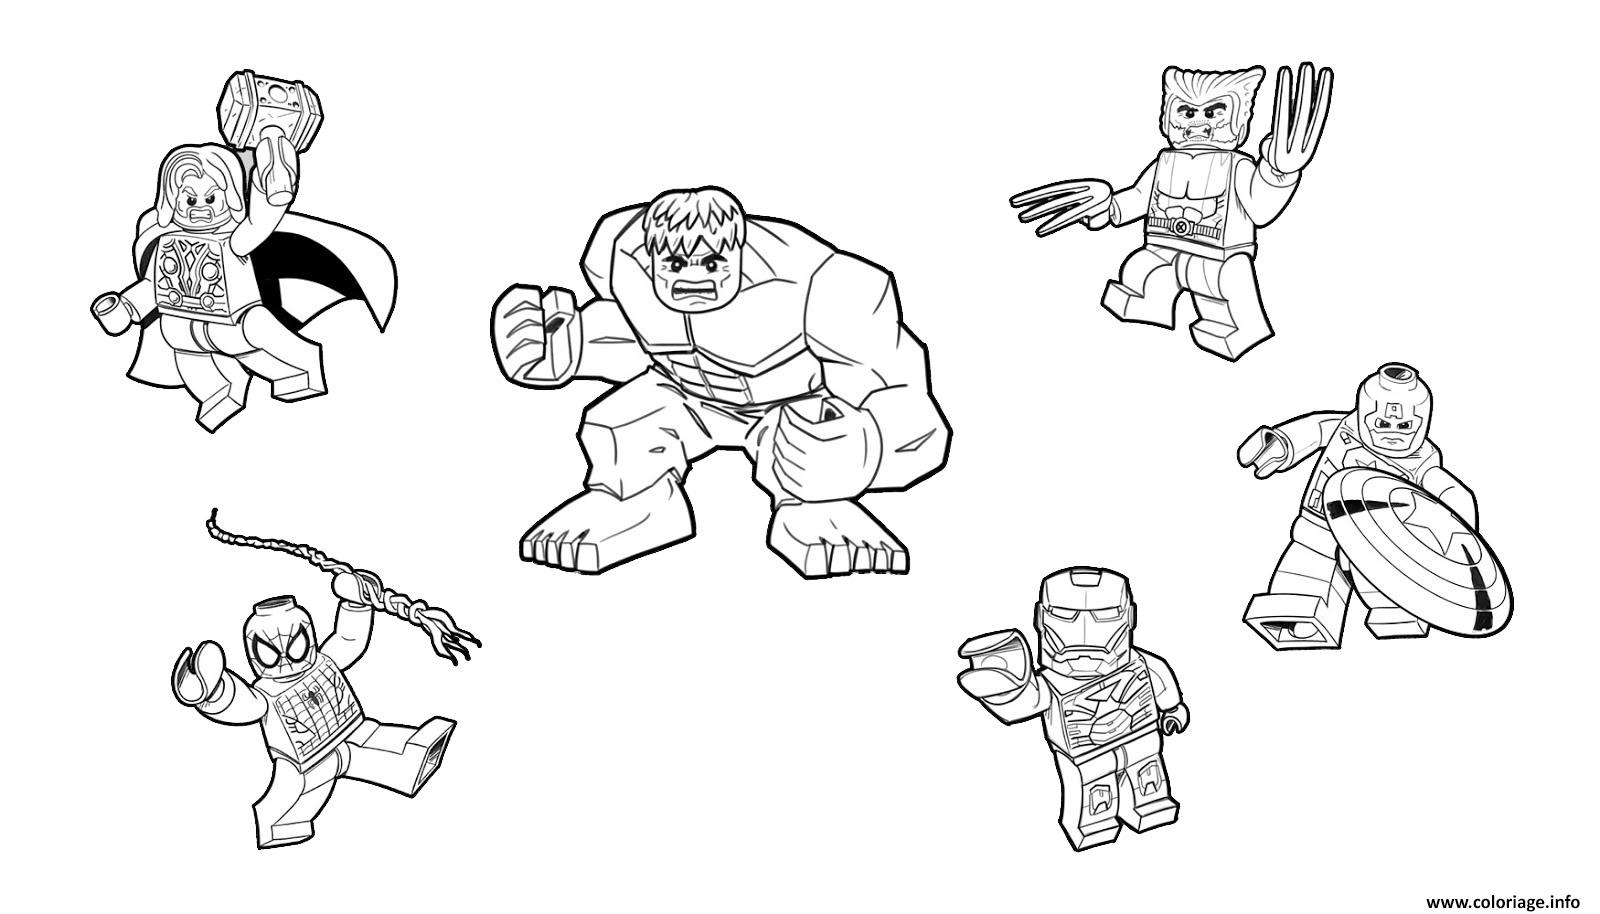 Coloriage Gratuit Lego.Coloriage Team Lego Marvel Hulk Ironman Spiderman Thor America